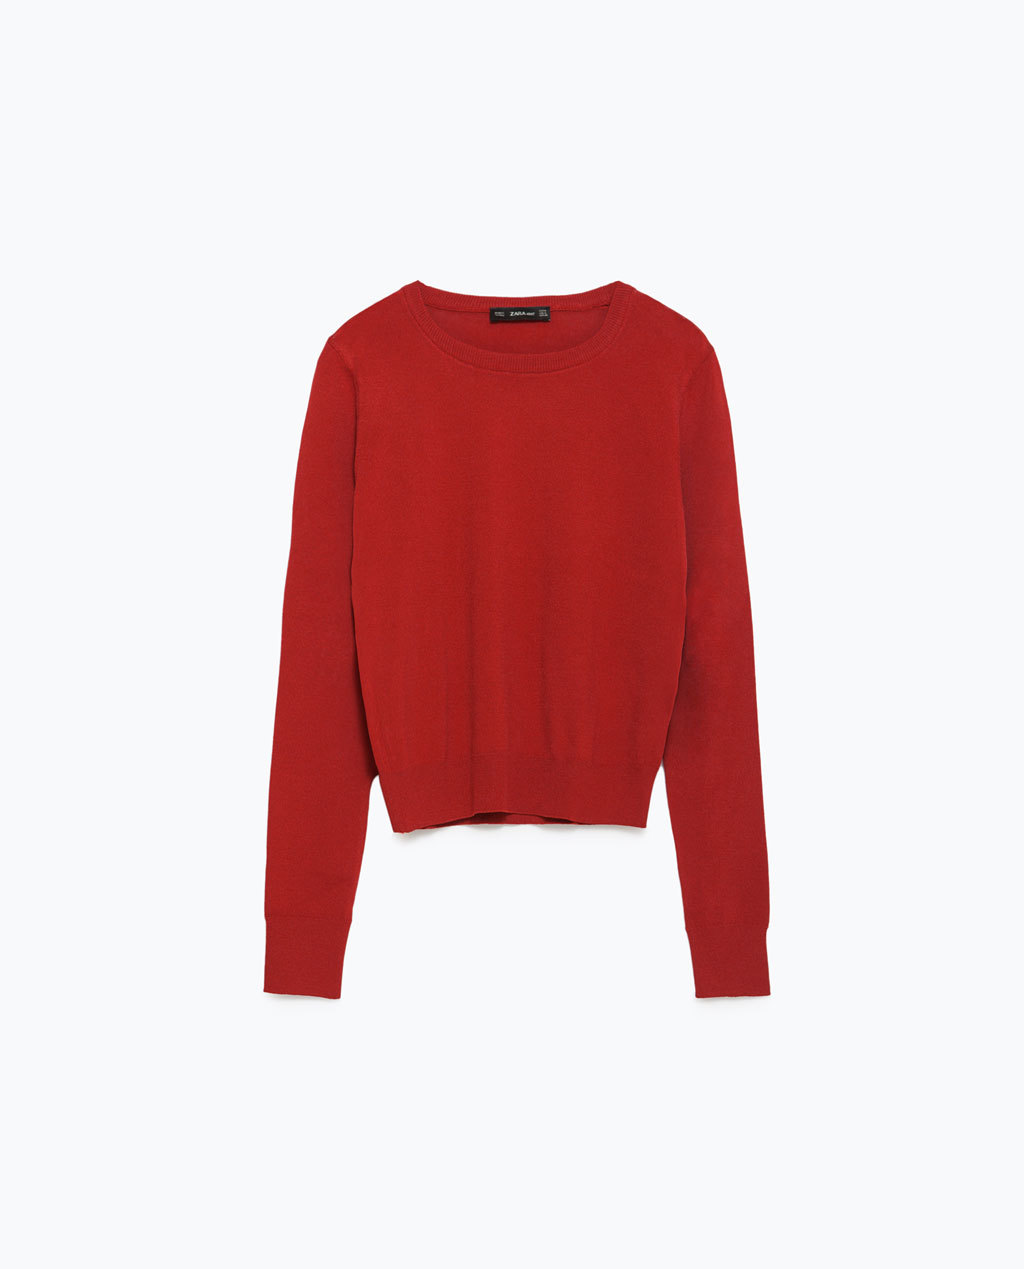 Cropped Sweater - pattern: plain; style: standard; predominant colour: true red; occasions: casual; length: standard; fit: standard fit; neckline: crew; sleeve length: long sleeve; sleeve style: standard; texture group: knits/crochet; pattern type: fabric; fibres: viscose/rayon - mix; season: a/w 2015; wardrobe: highlight